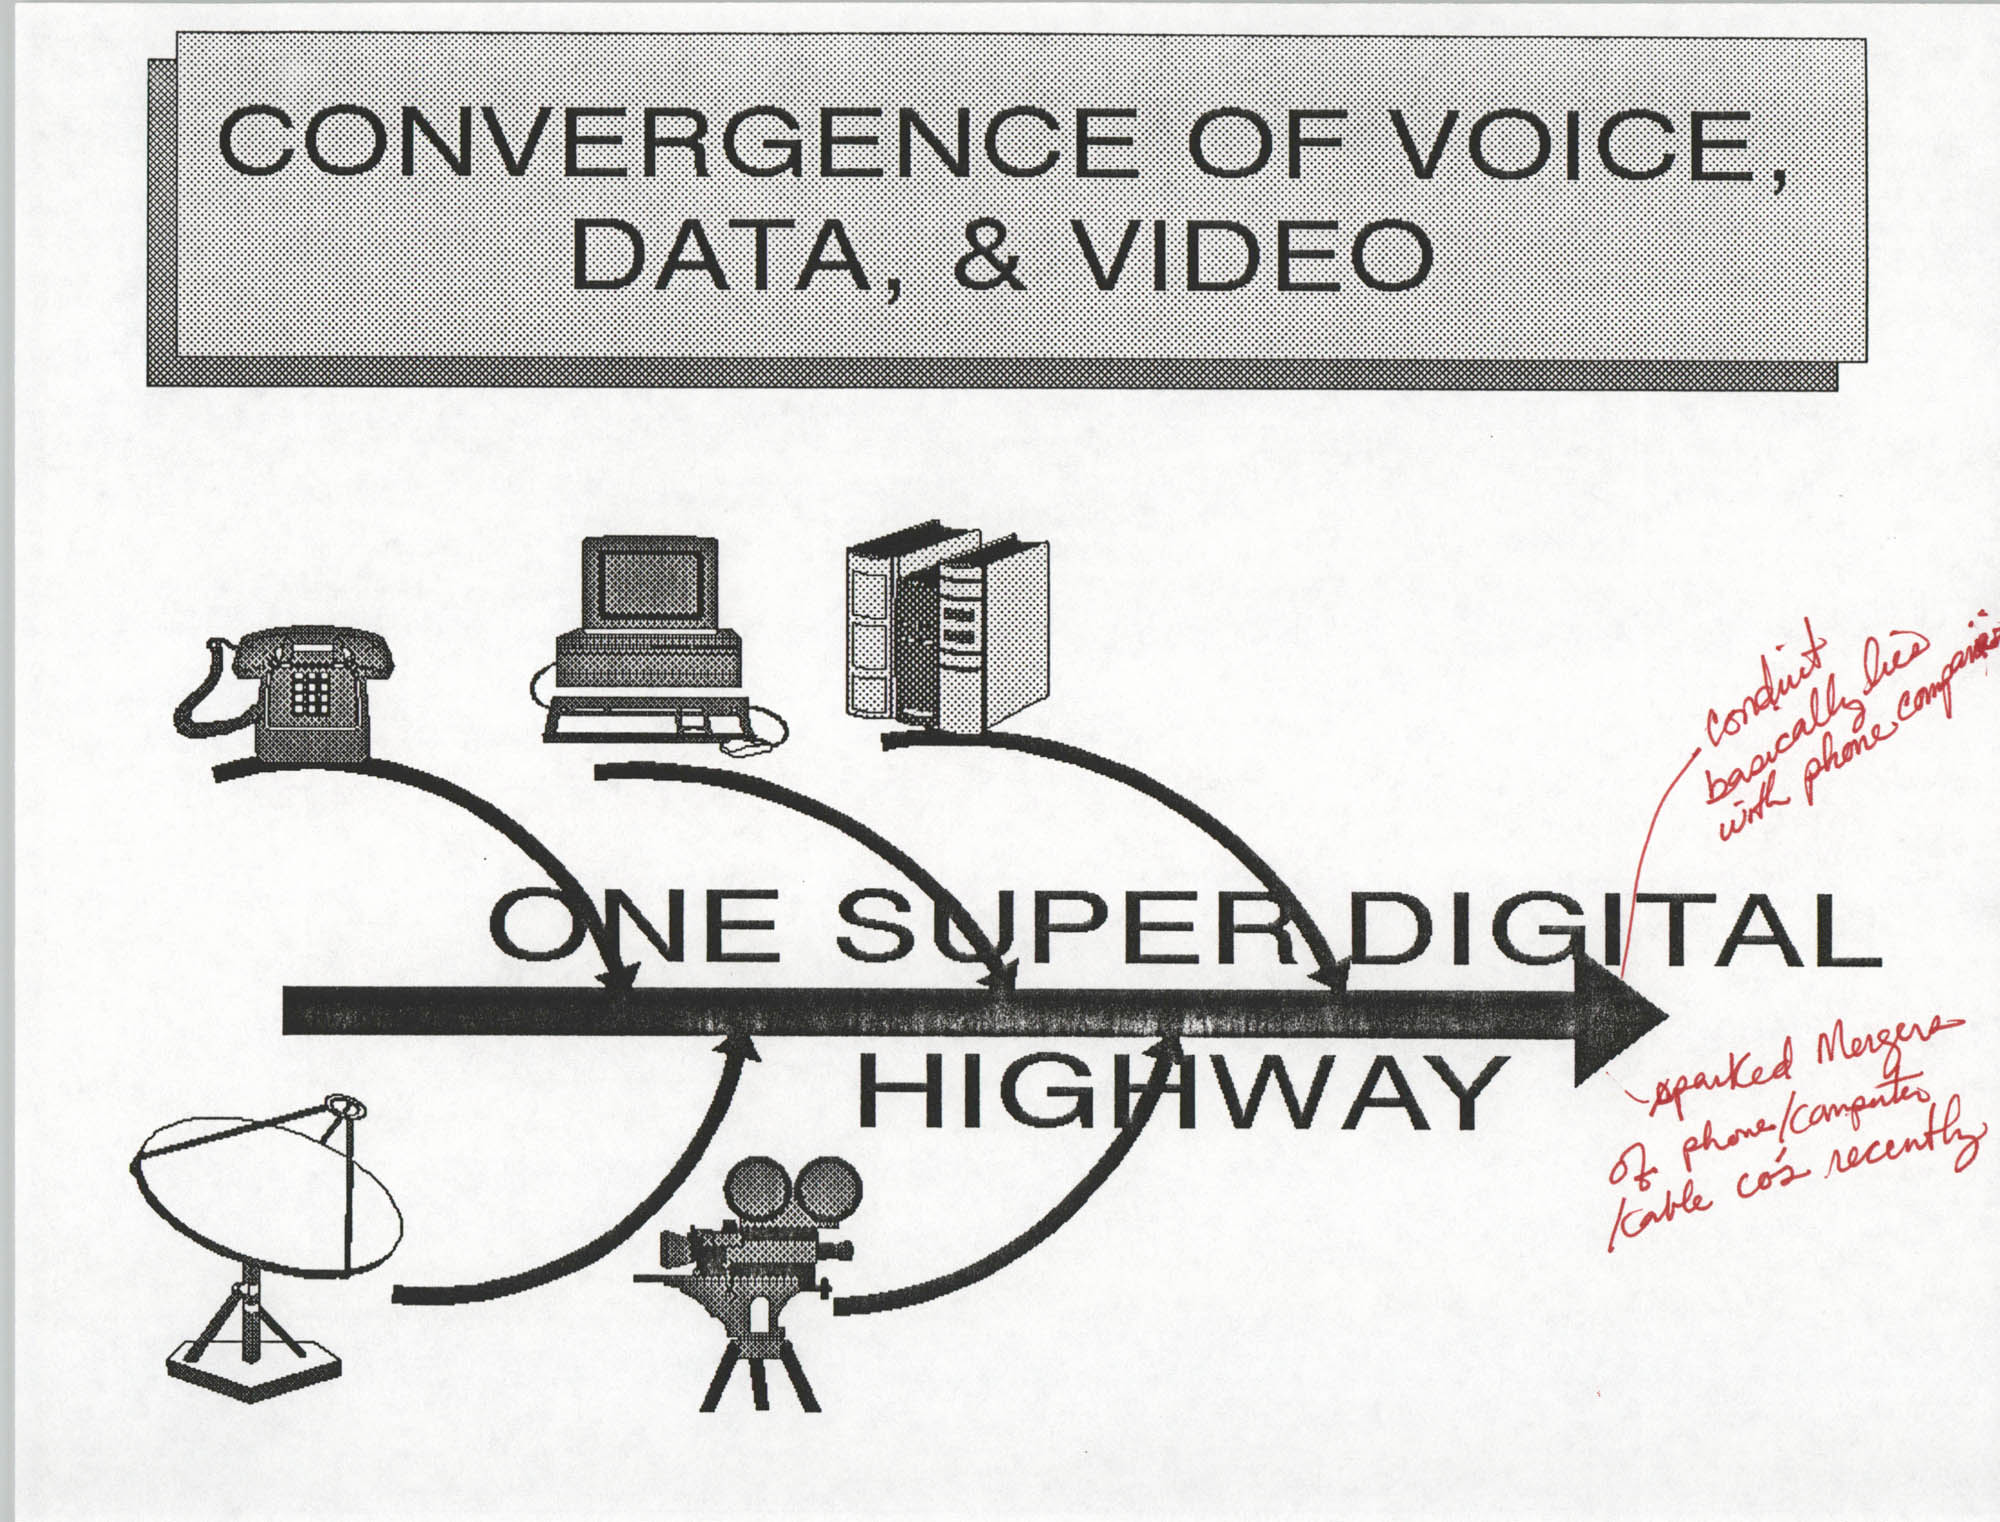 Developing an Agenda for the Information Superhighway, Anthony L. Pharr, May 20, 1994, Page 16